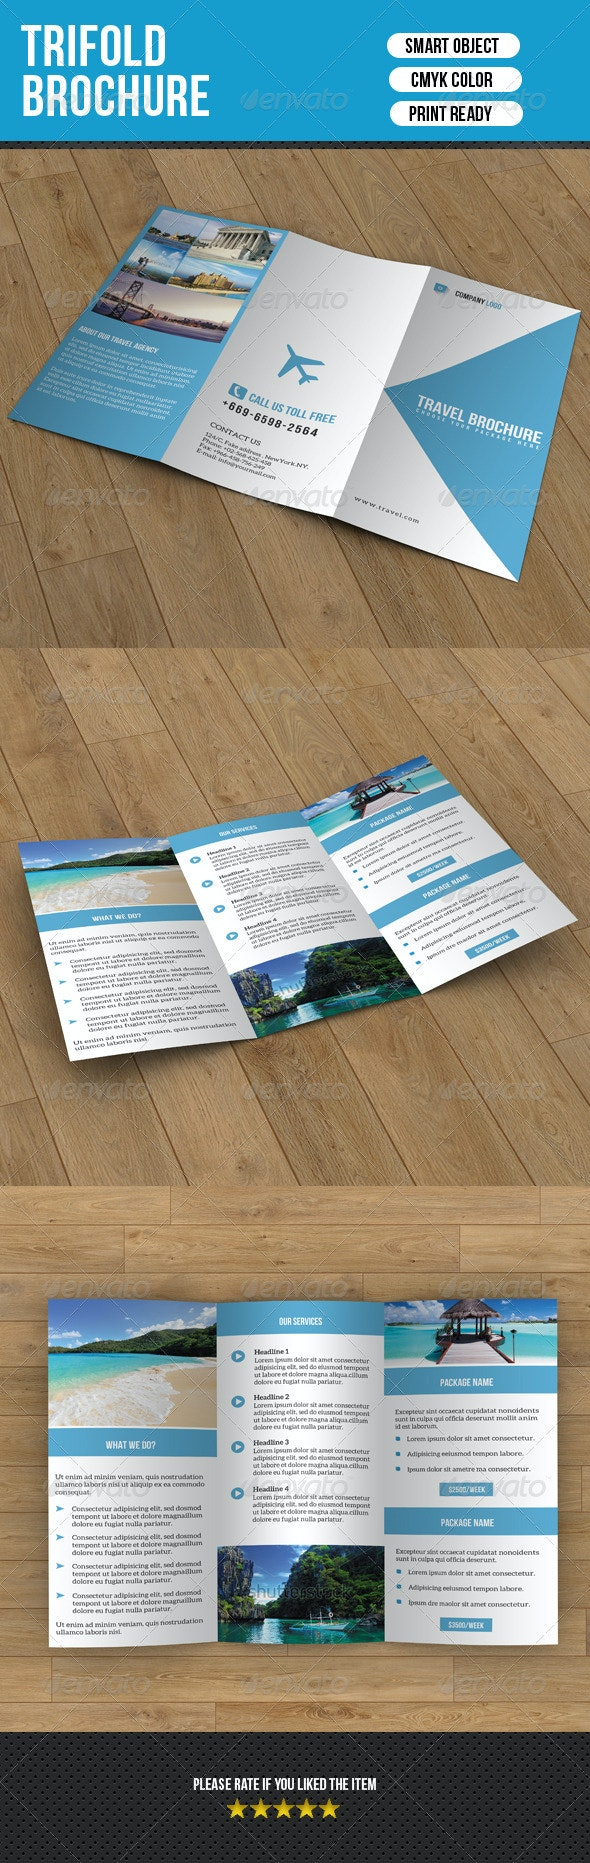 Trifold Brochure-Travel - Corporate Brochures